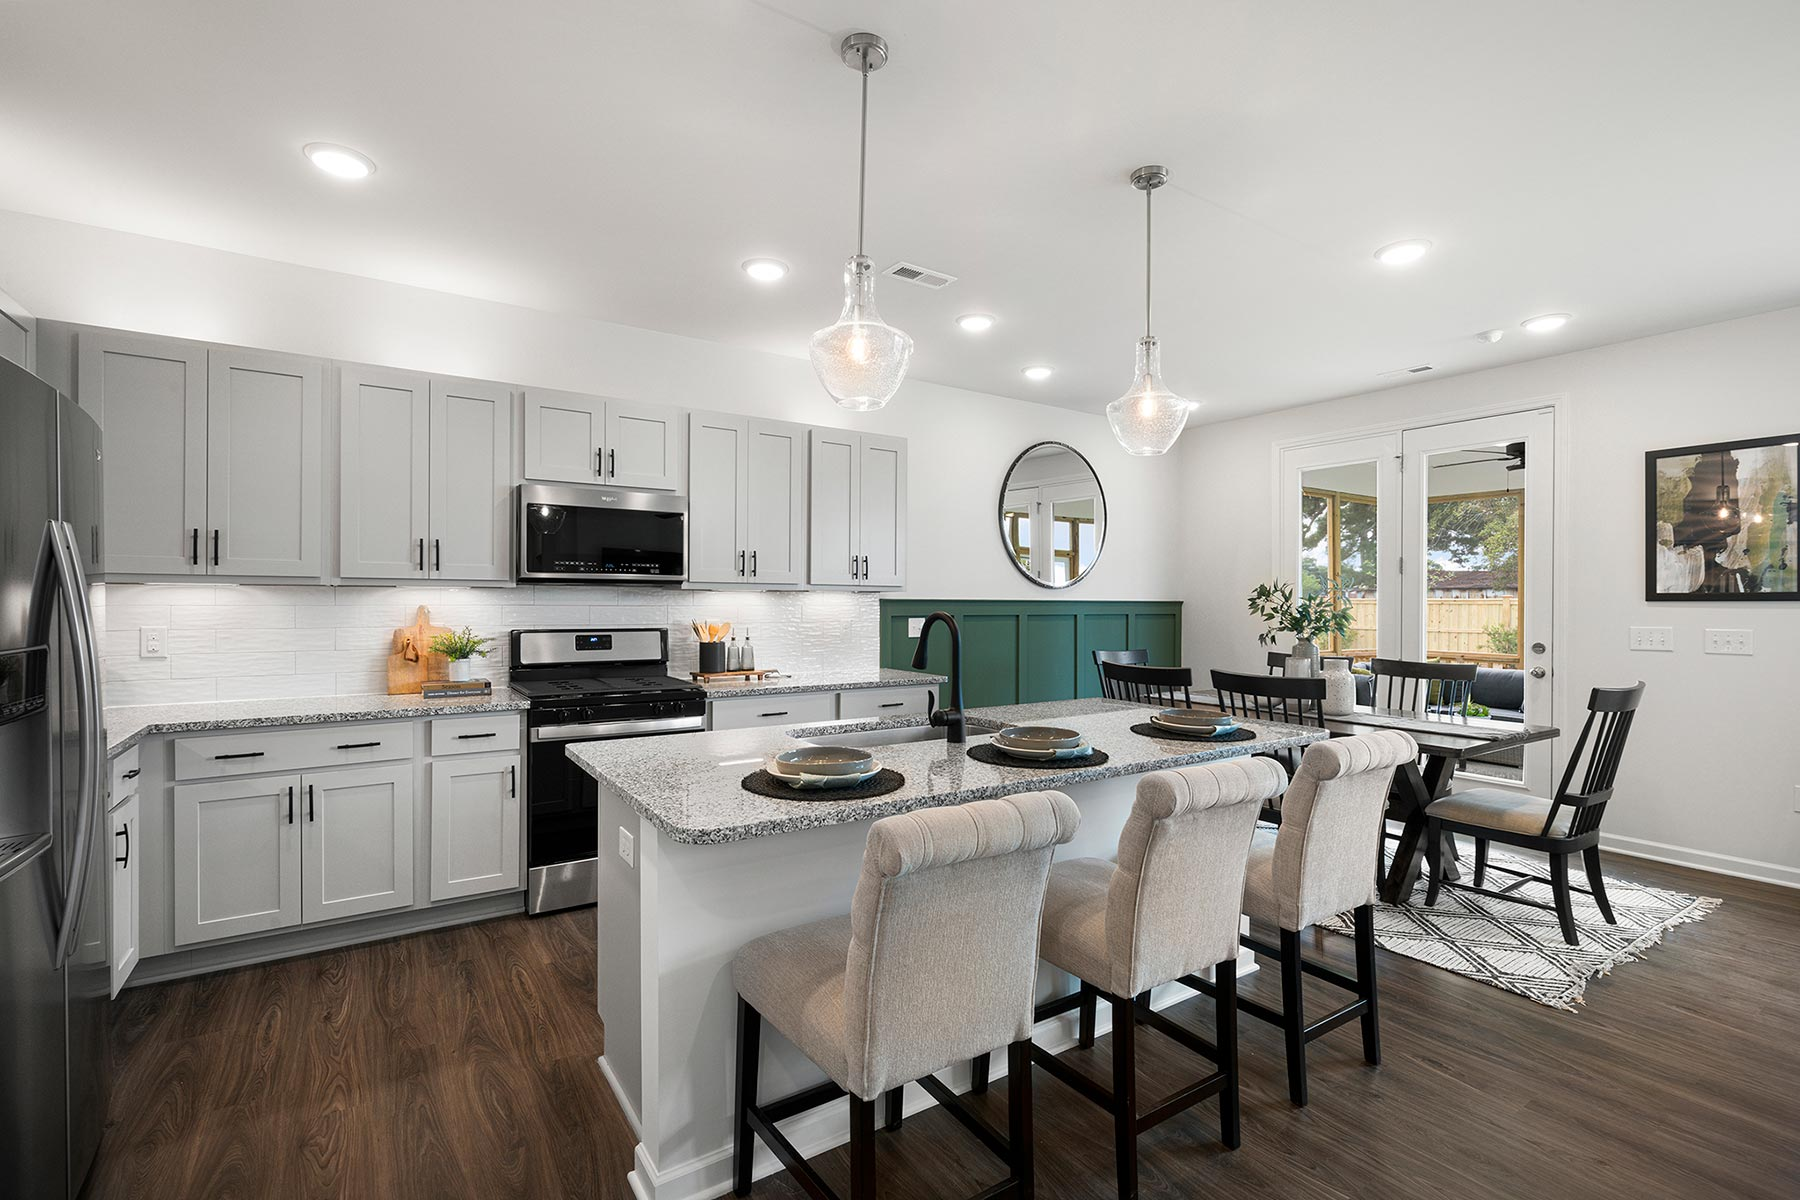 Reese Plan Kitchen at Oak Park in Garner North Carolina by Mattamy Homes